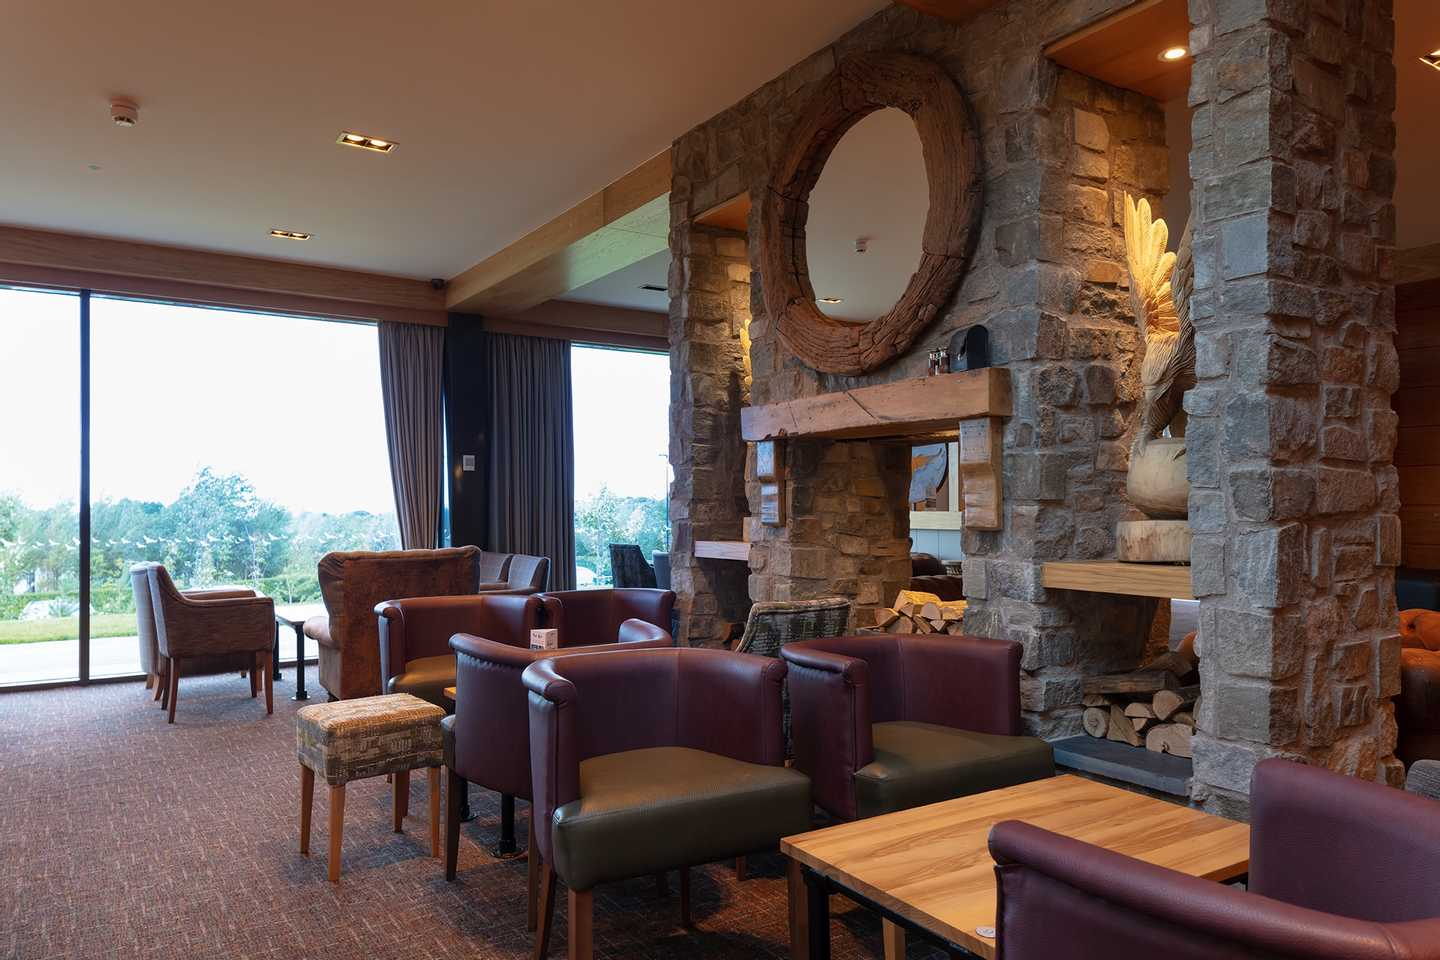 Interior of the Owners' Lounge at Seton Sands